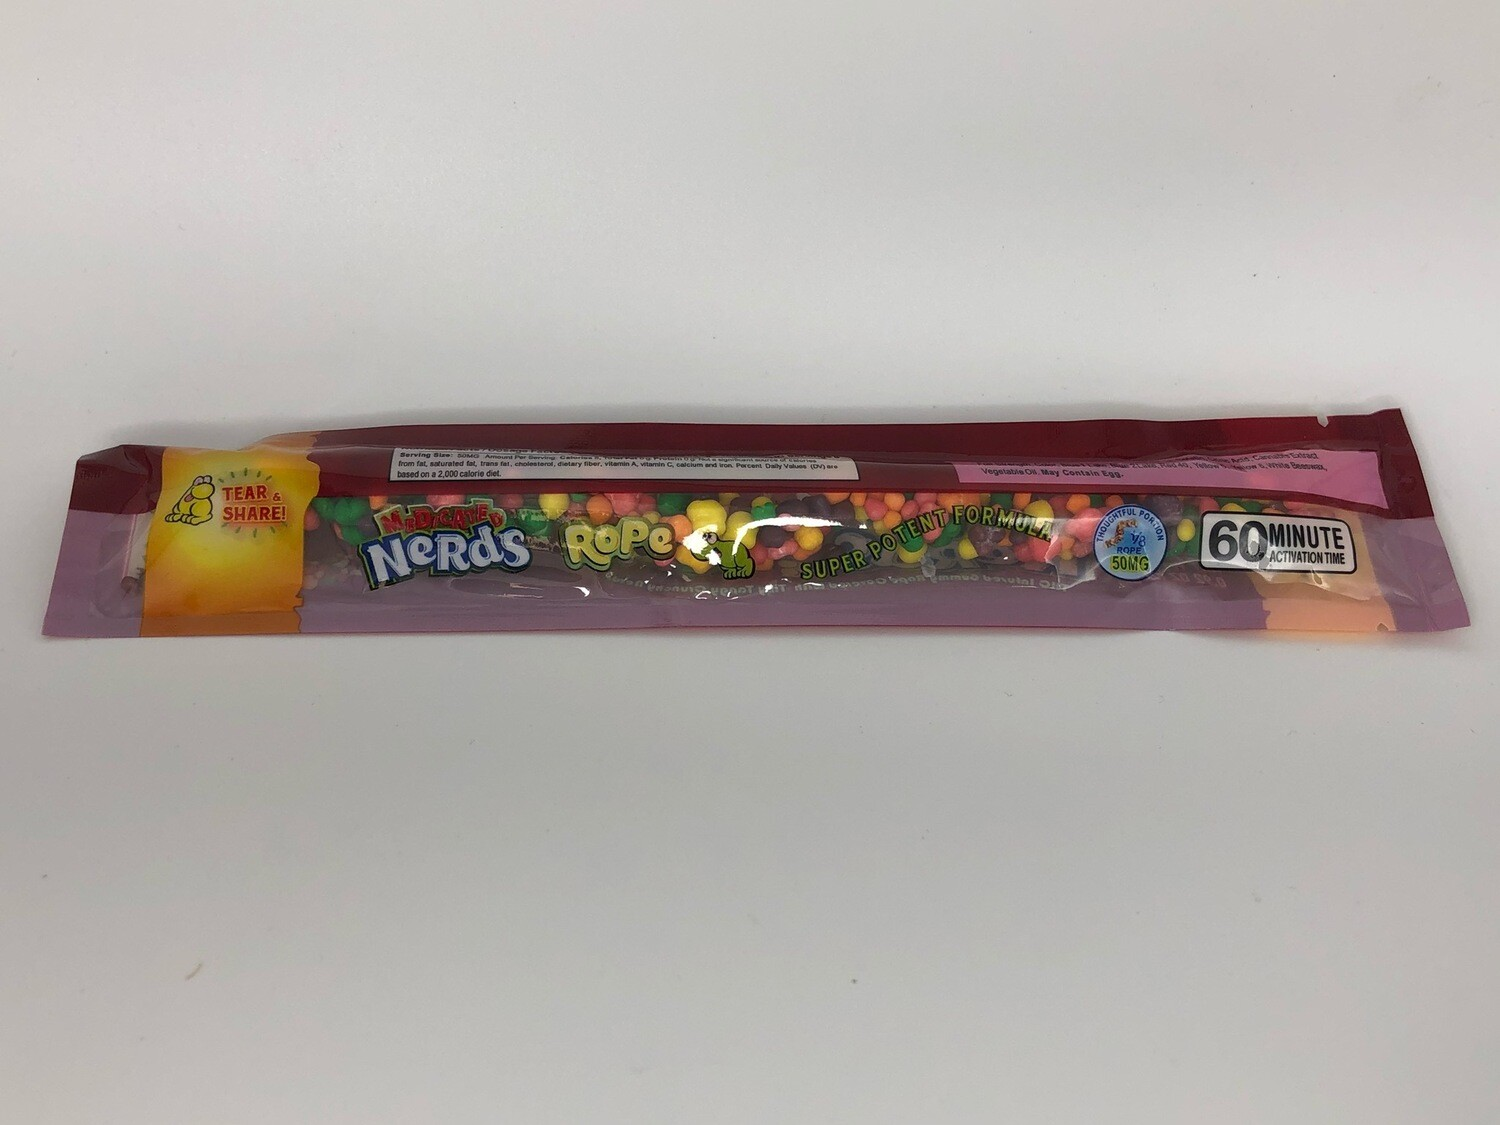 Nerds Rope - Seriously Strawberry (400MG)